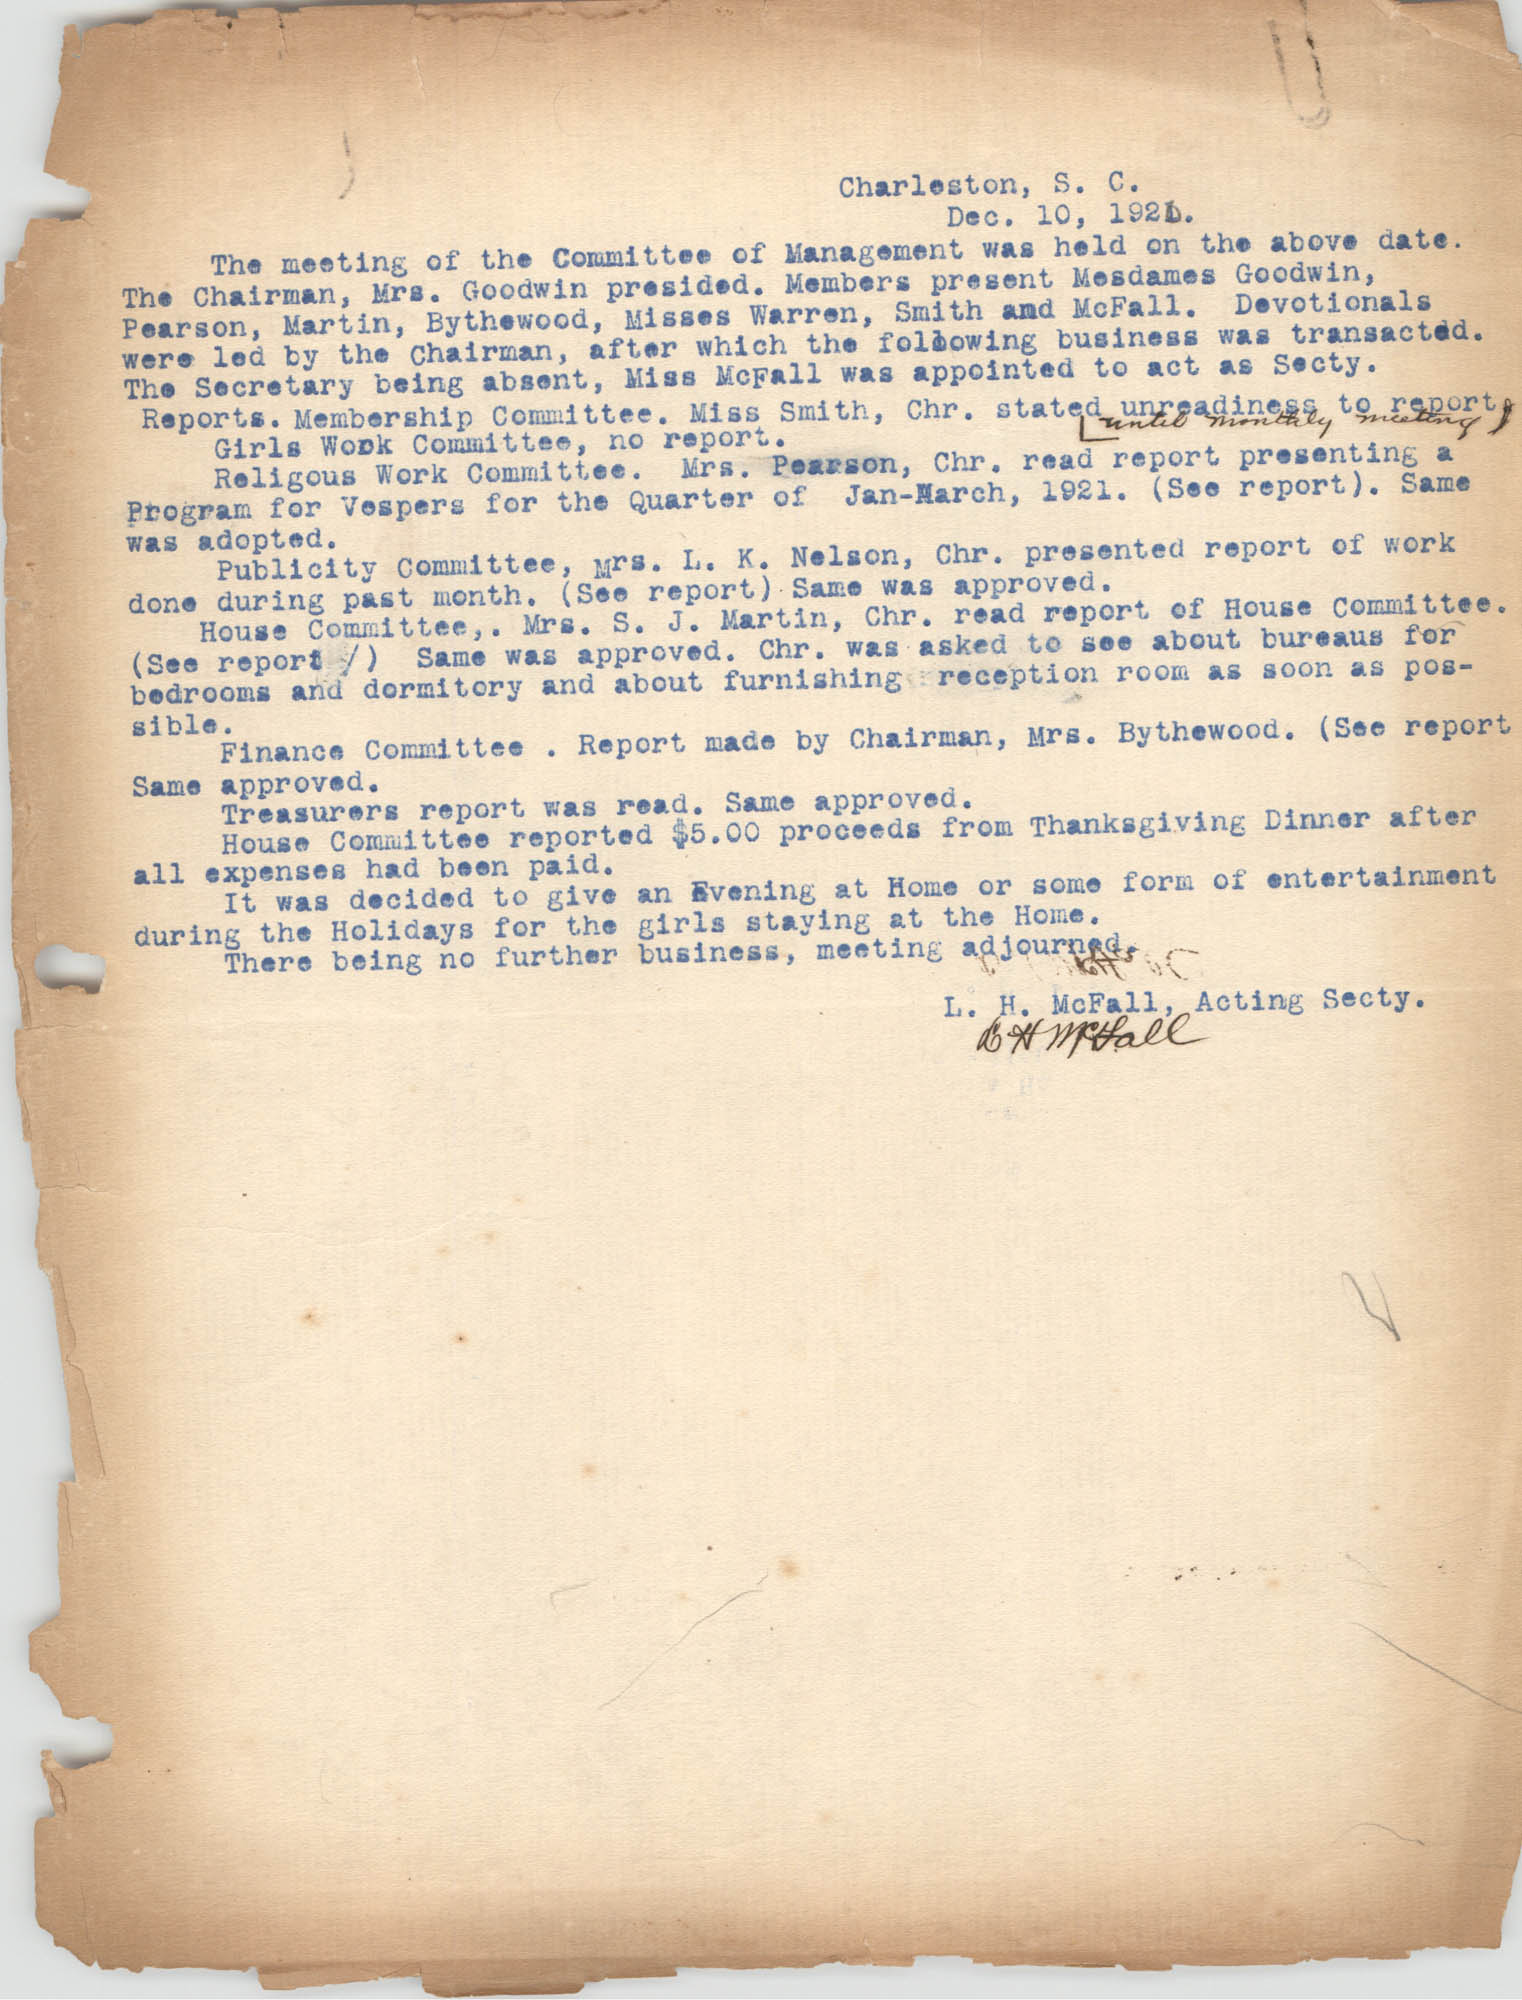 Minutes to the Management Committee, Coming Street Y.W.C.A., December 10, 1920